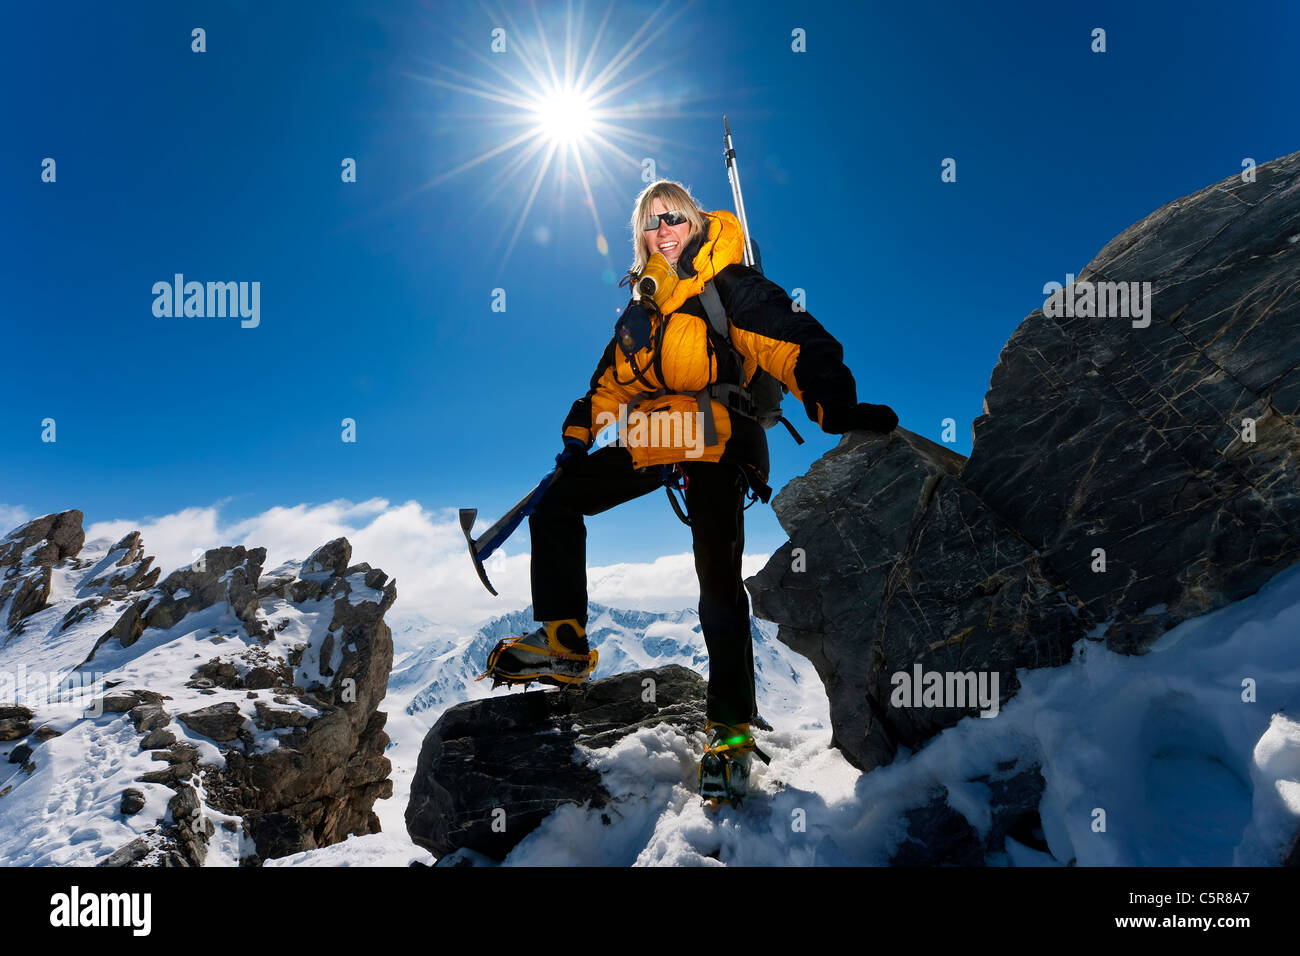 Mountaineer smiles. - Stock Image